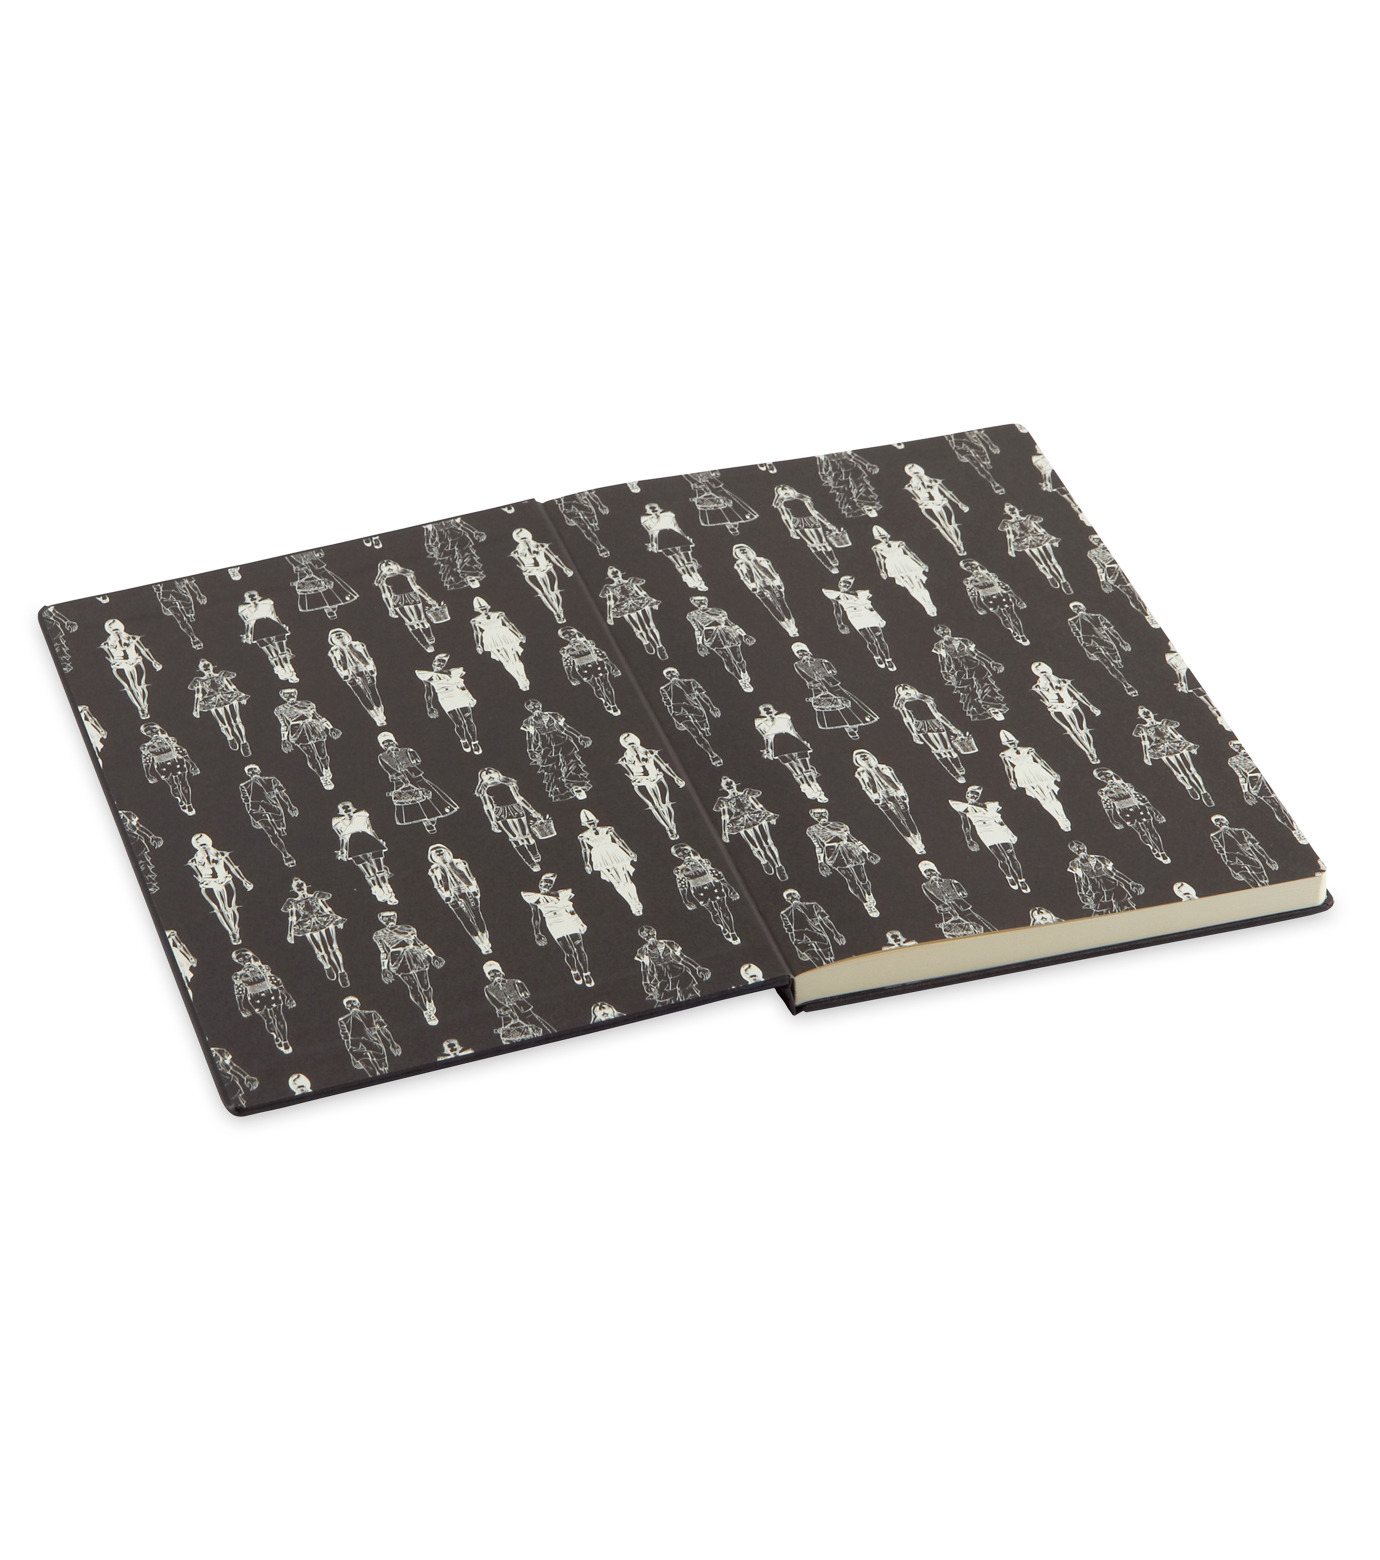 Fashematical(ファシェマティカル)のNote book-NONE(OTHER-GOODS/OTHER-GOODS)-Note-Mcqueen 拡大詳細画像4